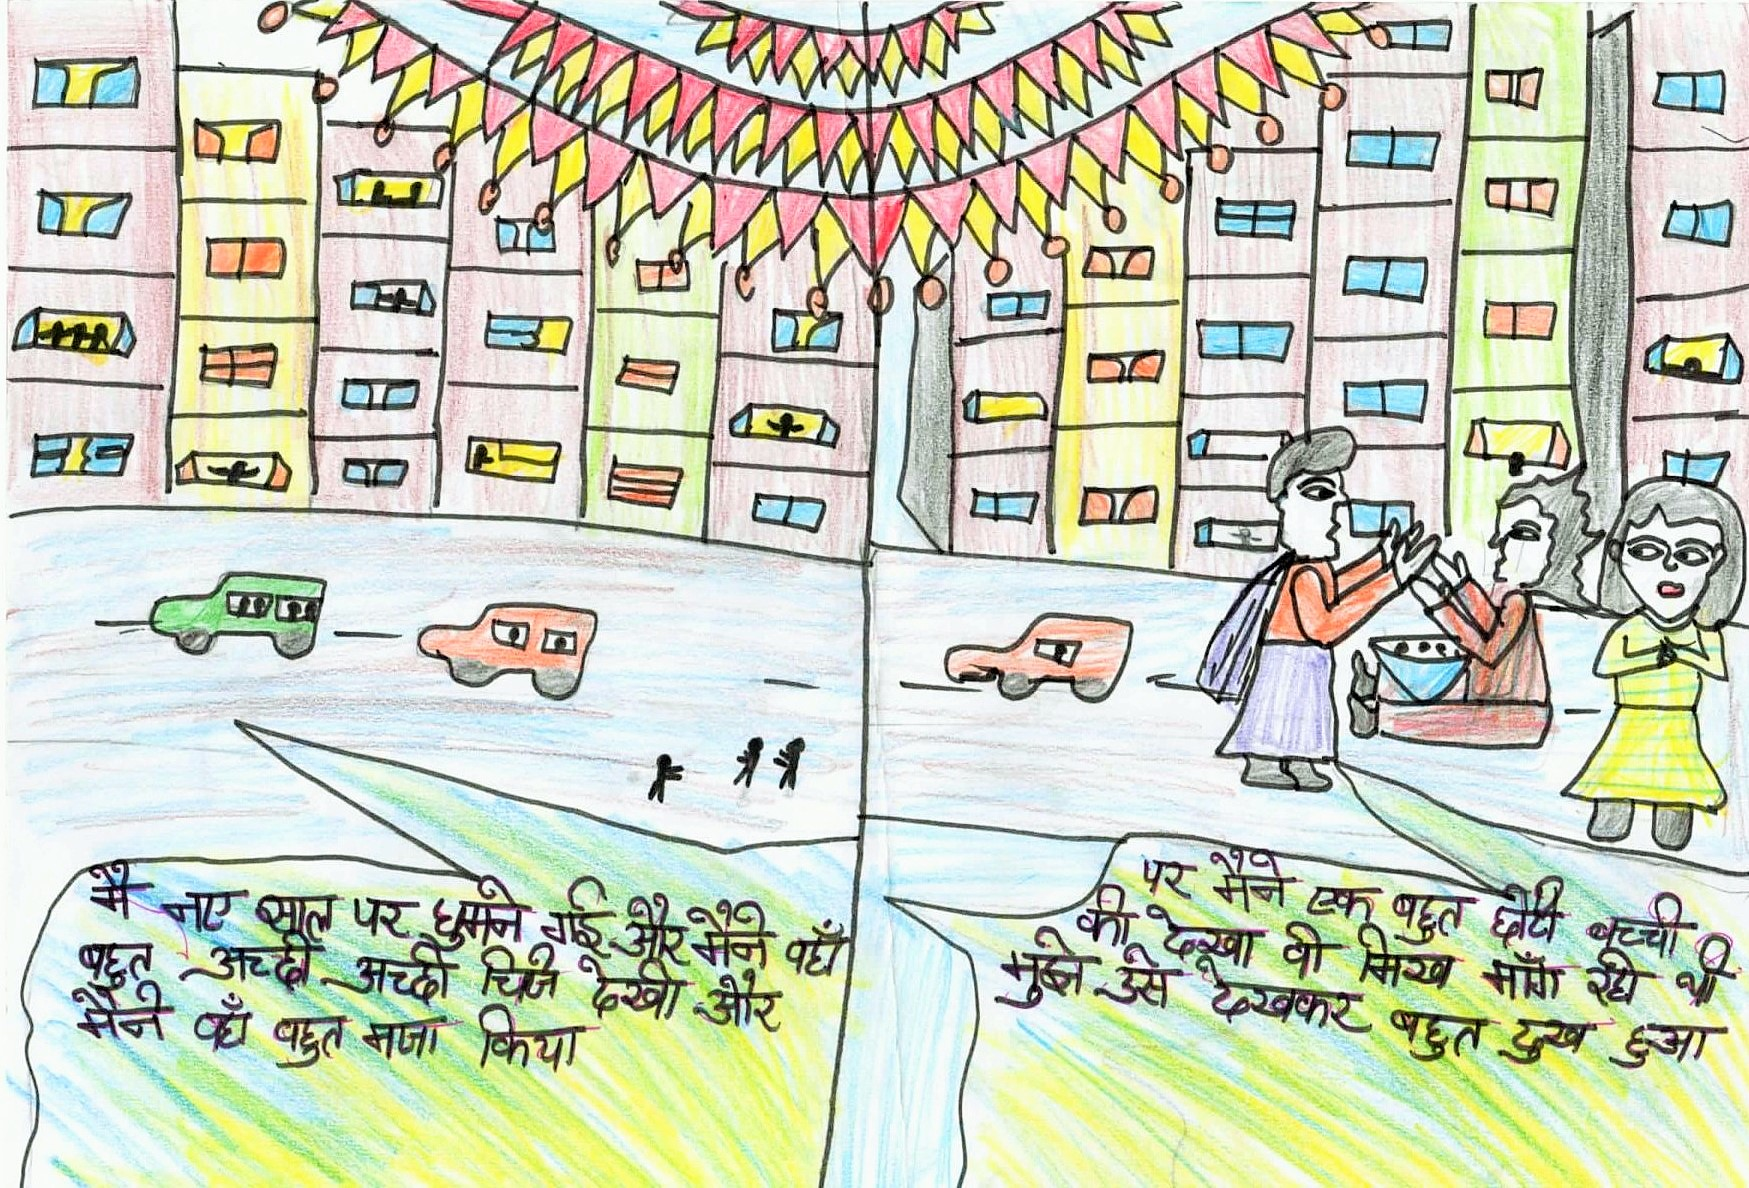 Dilshad_Garden_children_s_drawings_scanned-page-033.jpg